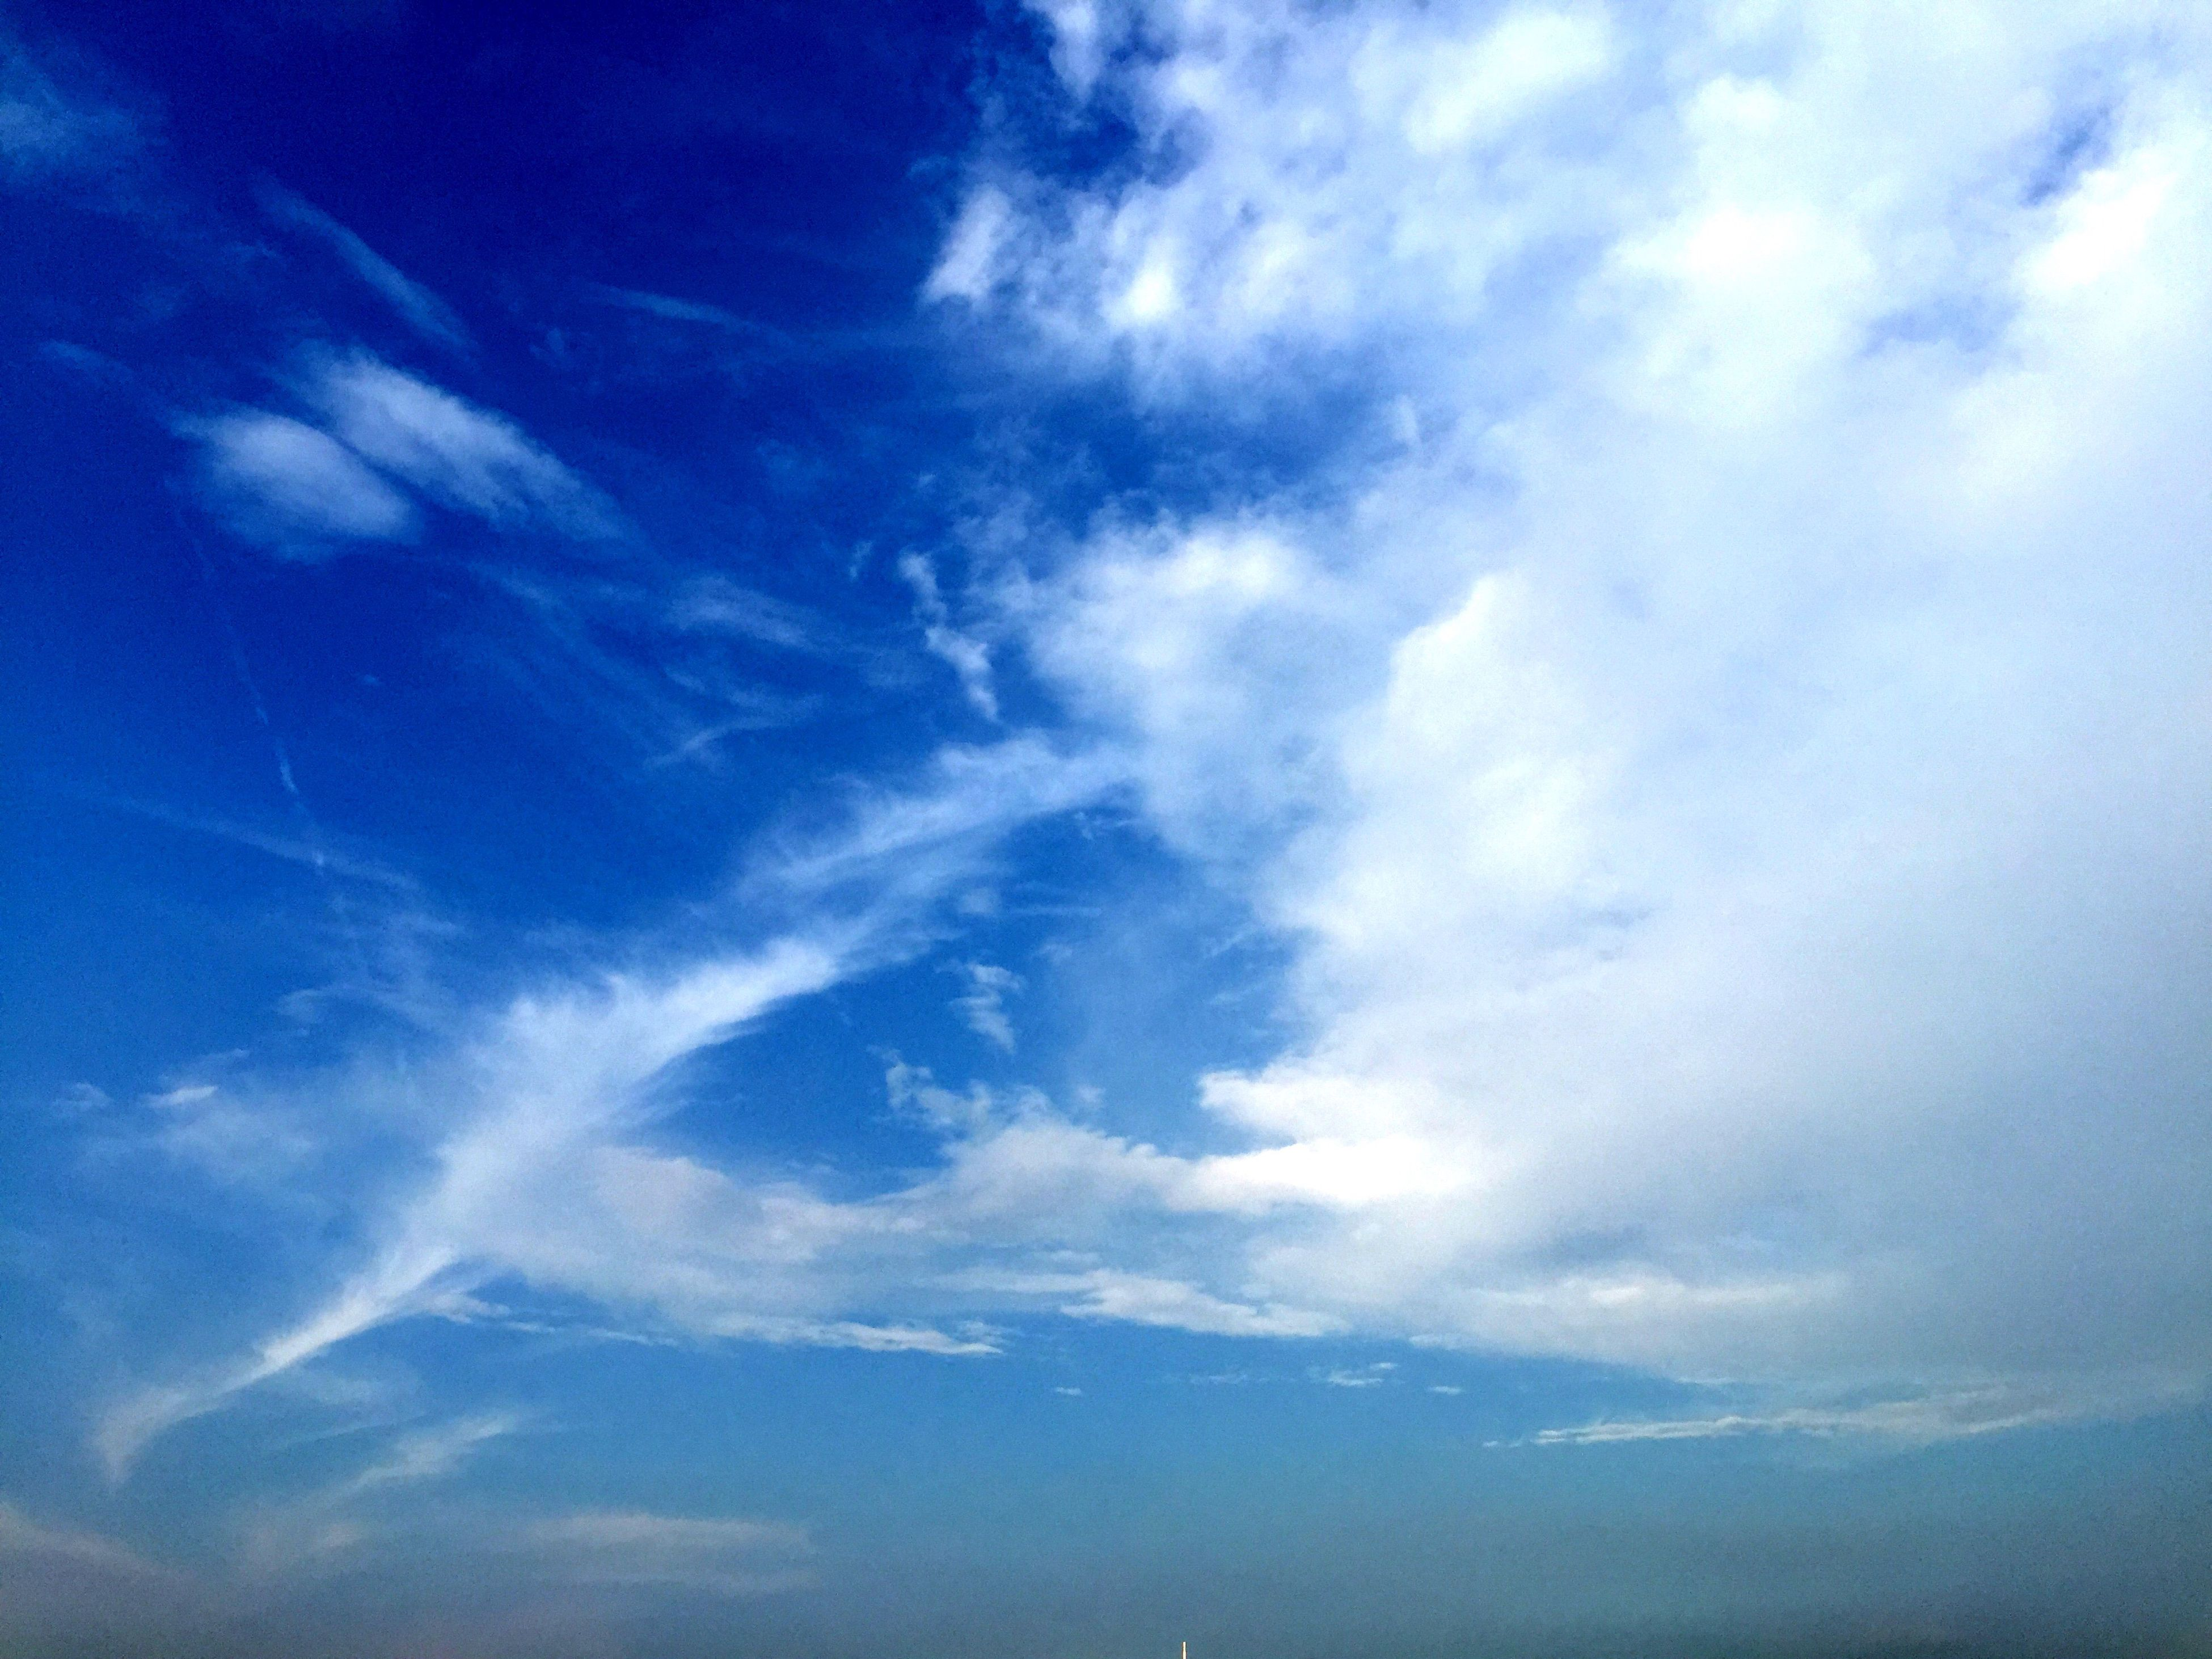 sky, low angle view, cloud - sky, blue, sky only, beauty in nature, tranquility, scenics, tranquil scene, nature, cloudy, cloudscape, cloud, backgrounds, idyllic, full frame, outdoors, no people, day, majestic